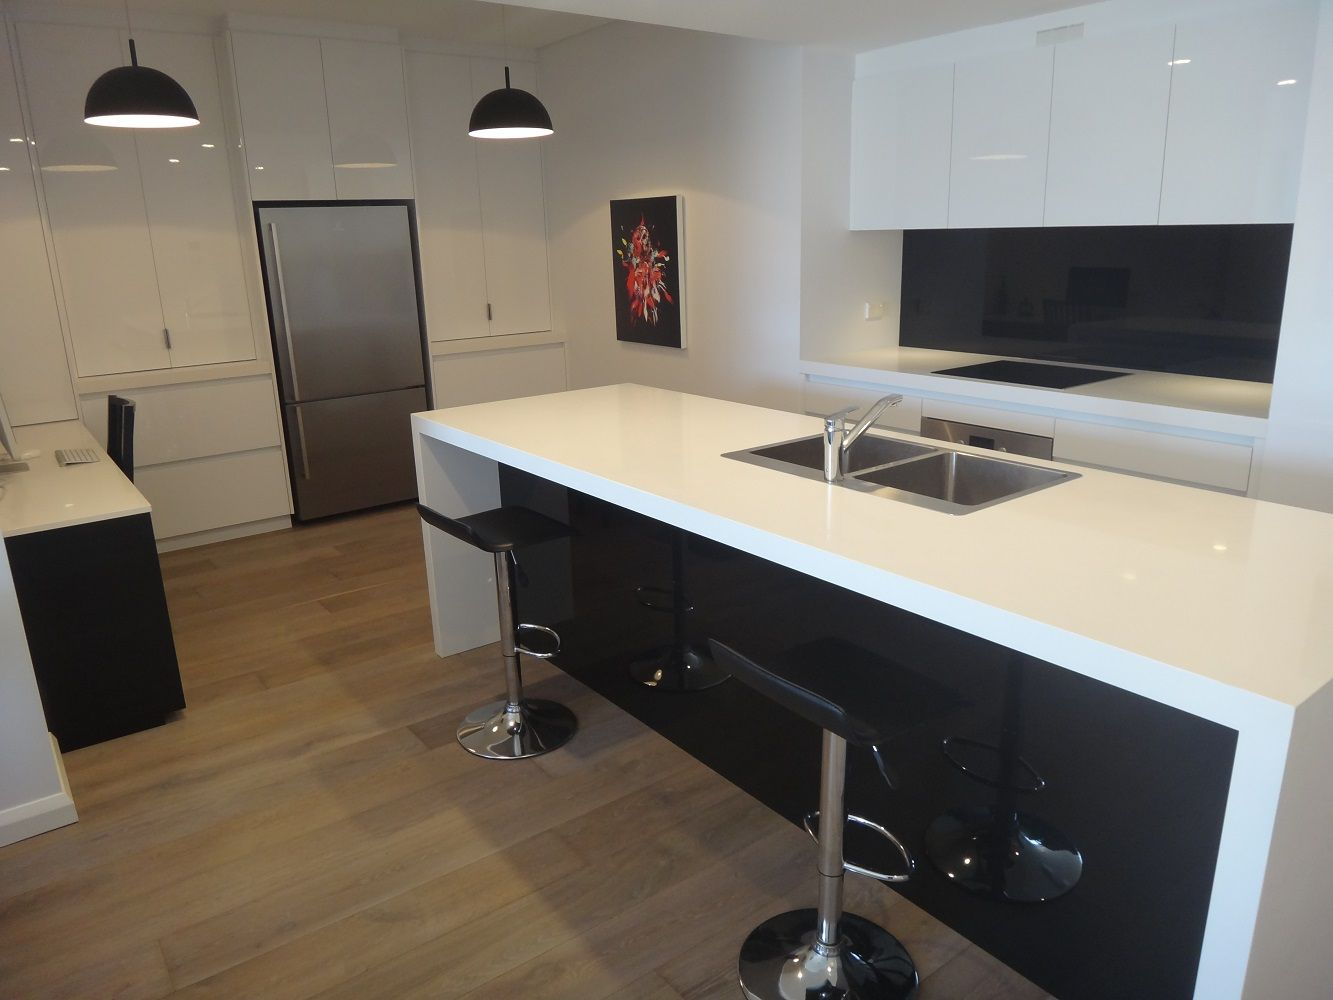 white and black kitchens - Google Search | Kitchens ...